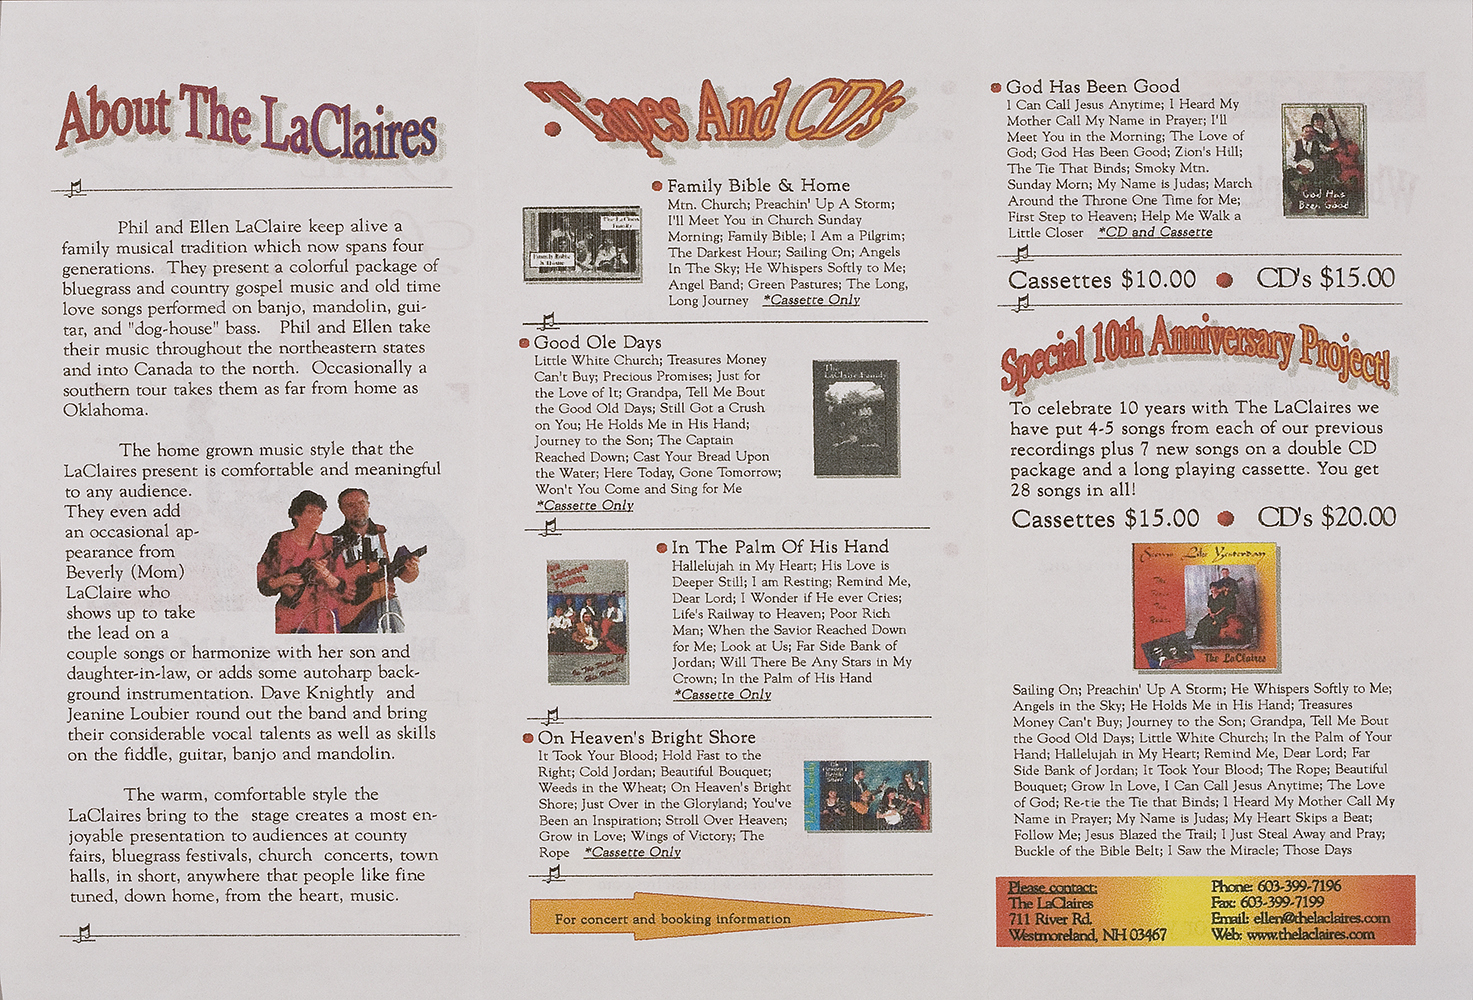 BIOG-0305, The LaClaire Band, back side